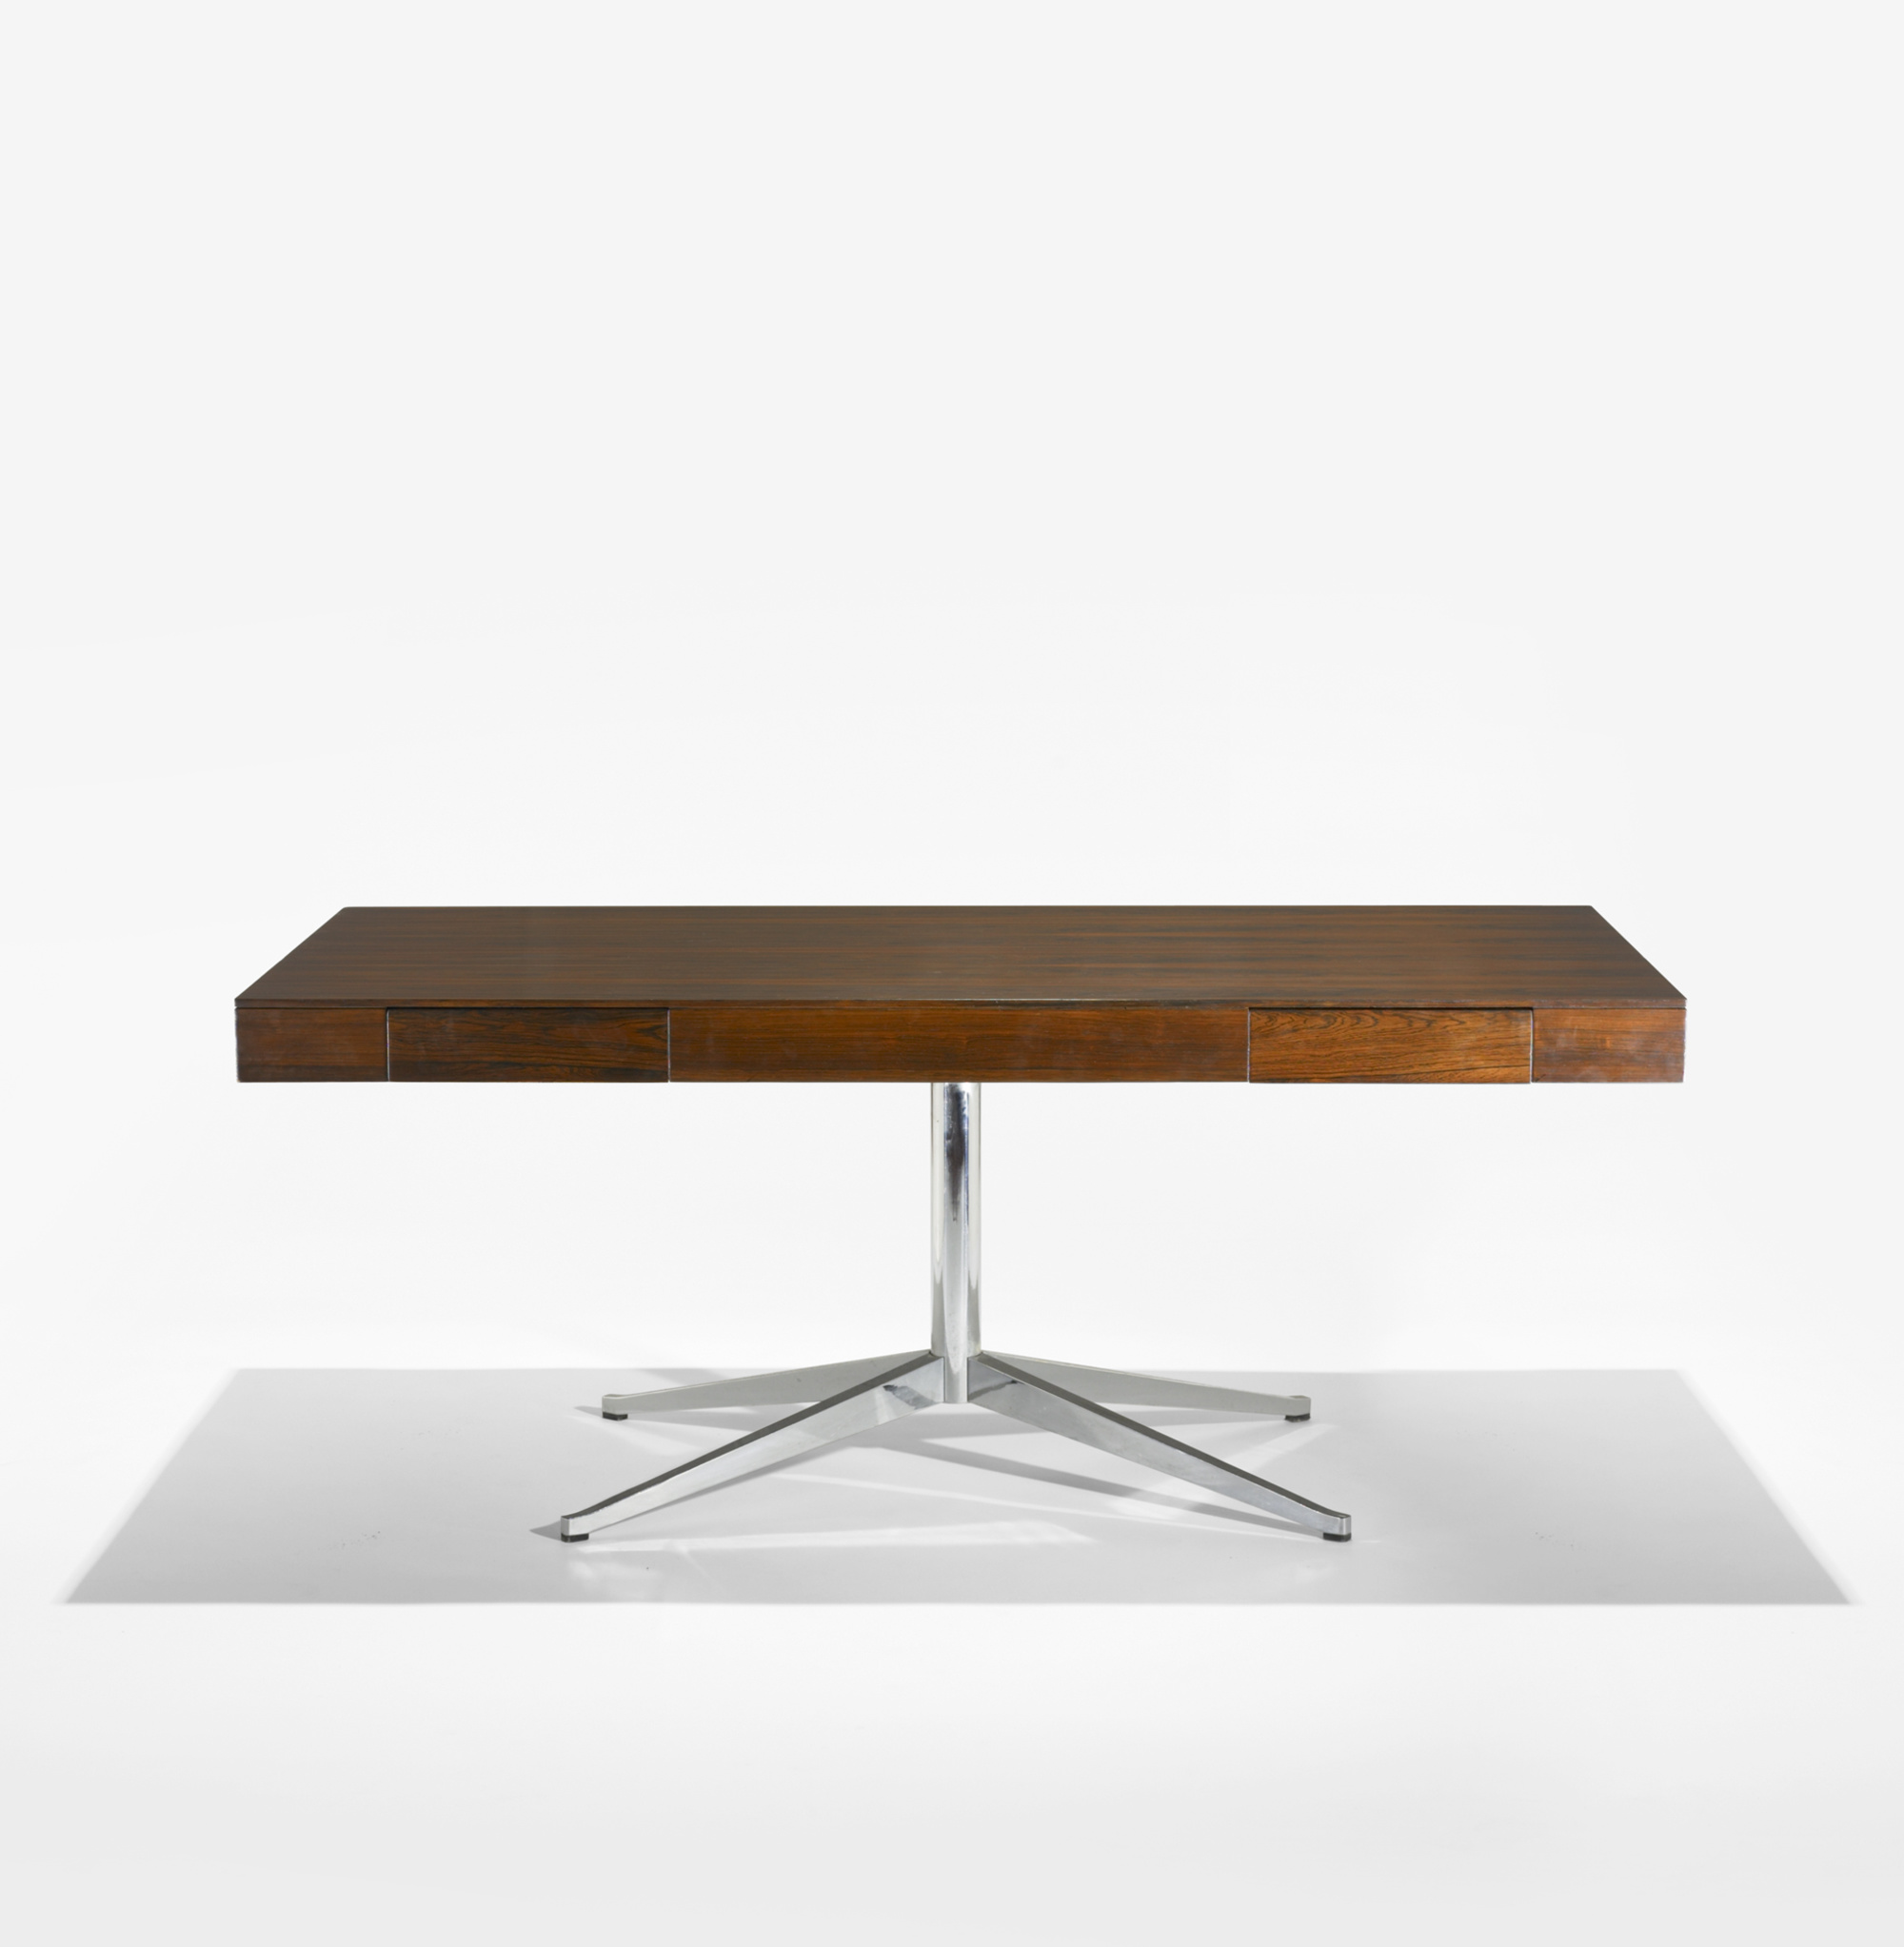 385 Florence Knoll Executive Desk Modern Design 23 March 2010 Auctions Wright Of Art And